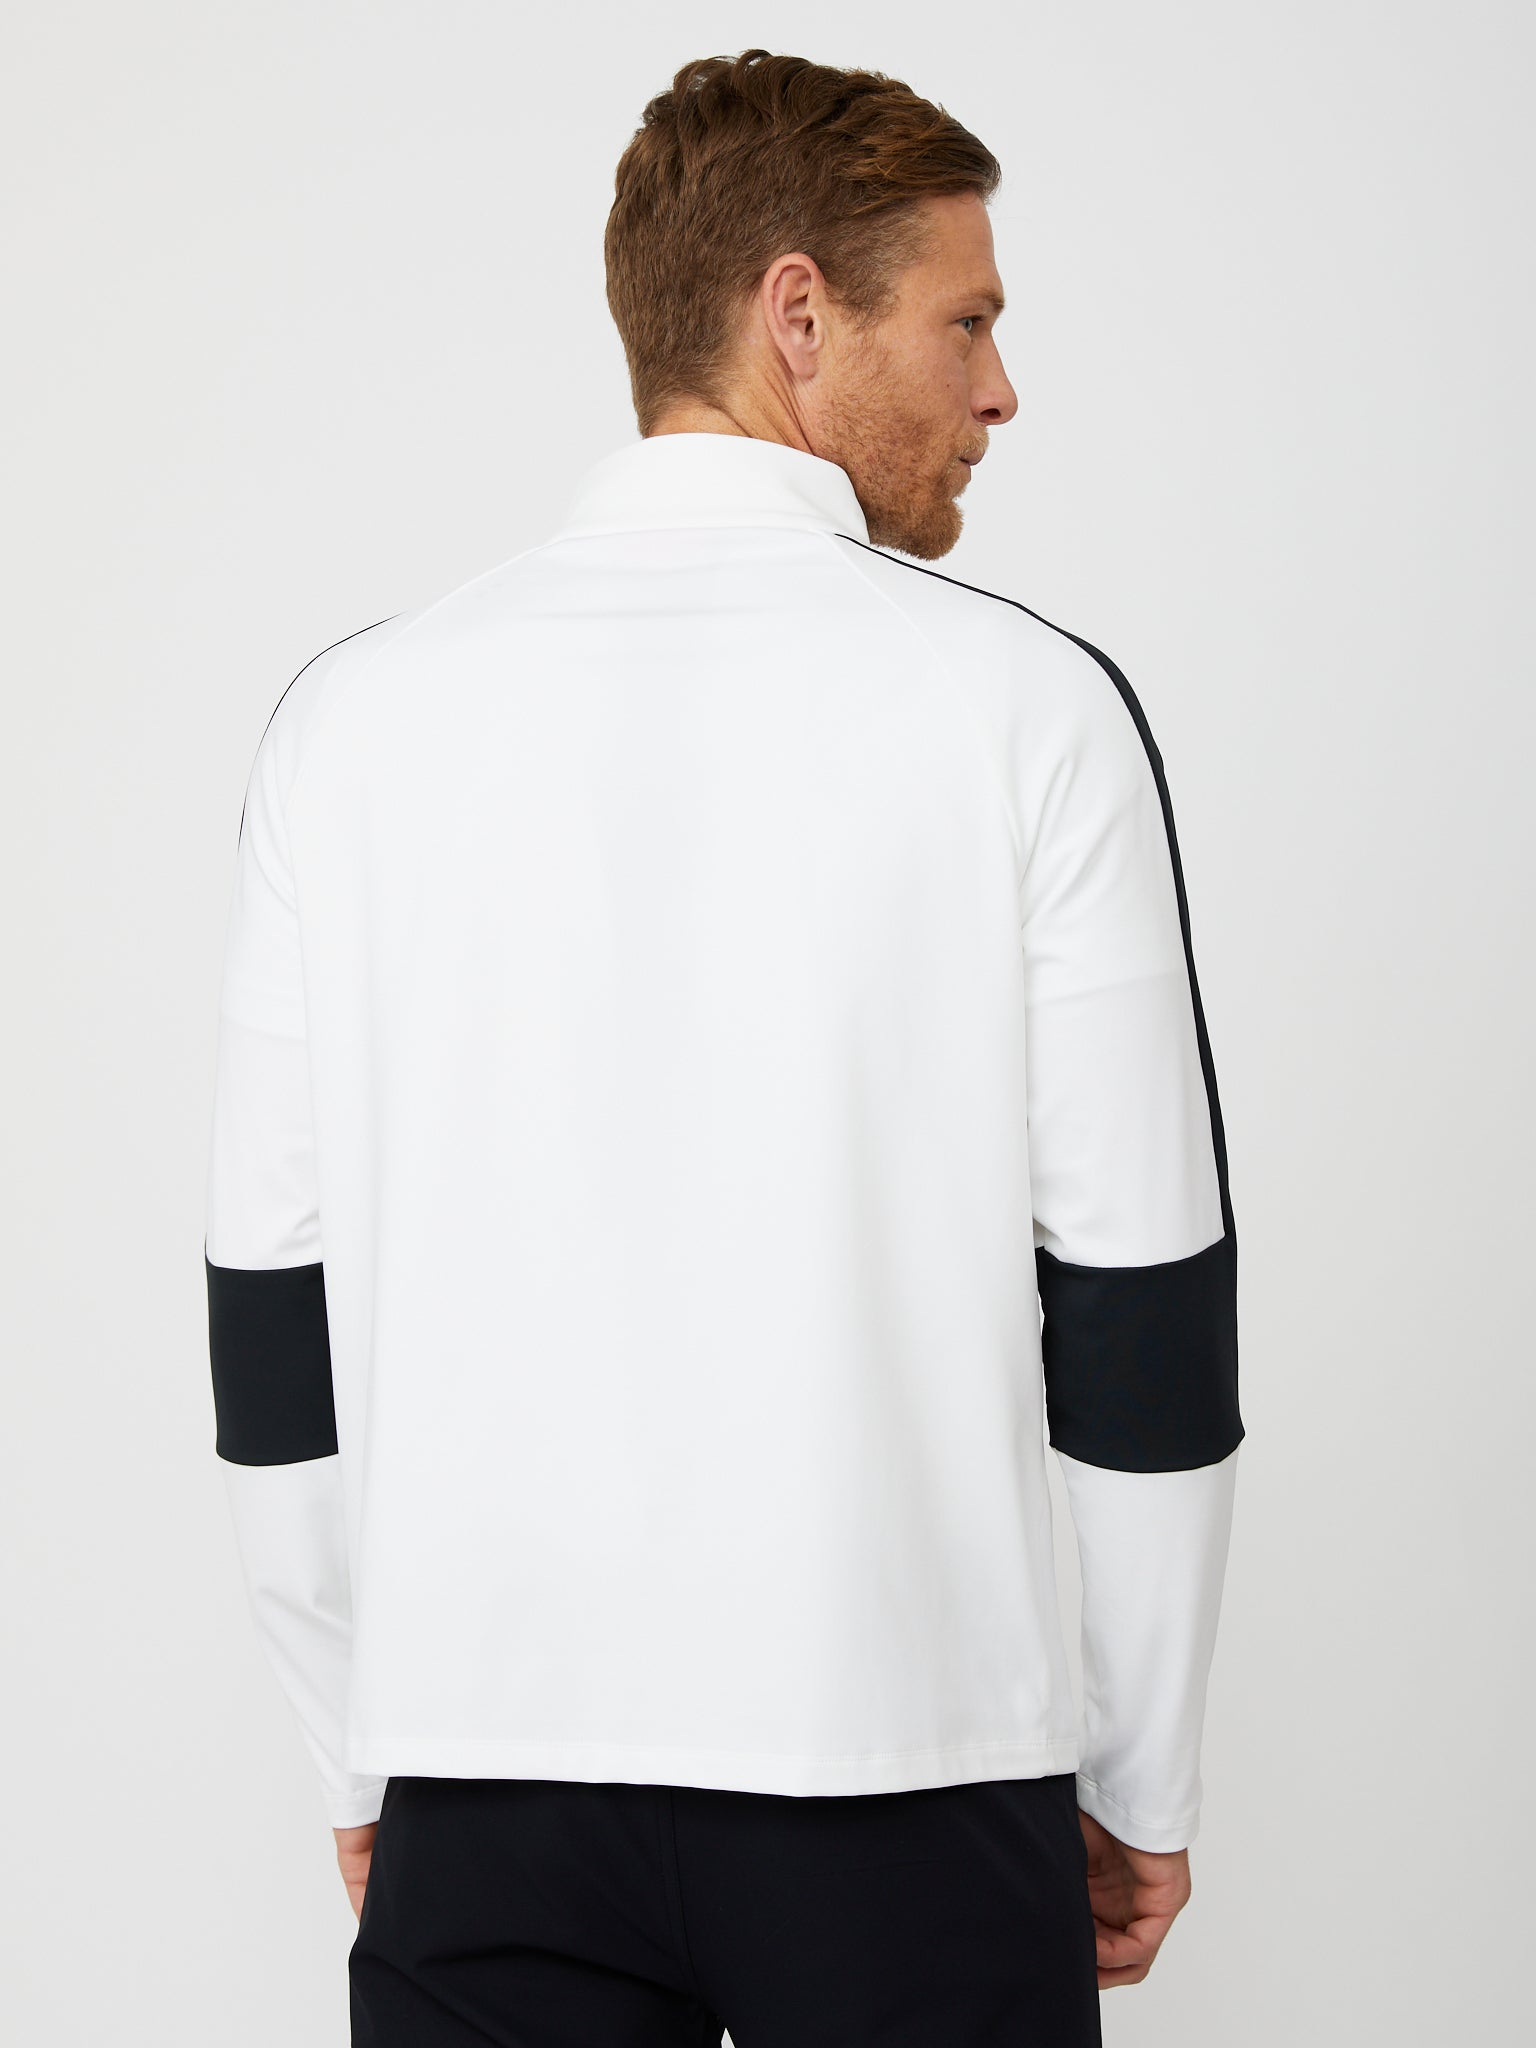 Fowler Quarter Zip in White/Black